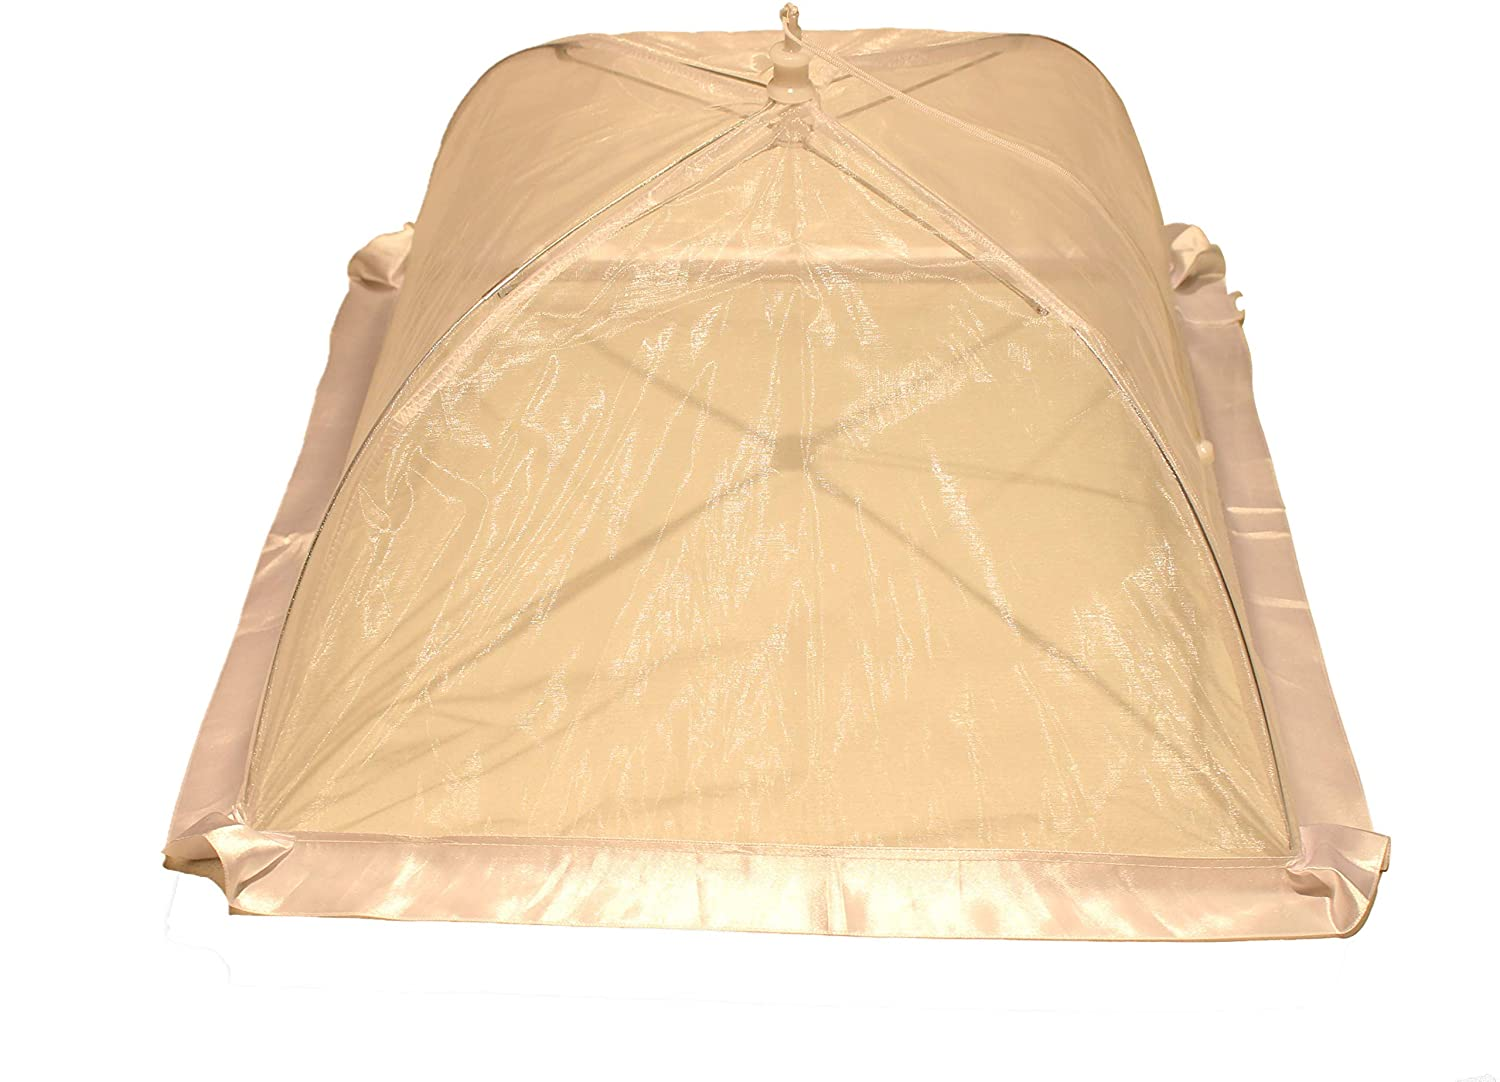 Quality Collapsible Mesh Food Cover Tent │ Keeps Flies And Bugs Off Your Food │ Great For Indoor And Outdoor Use Texas United